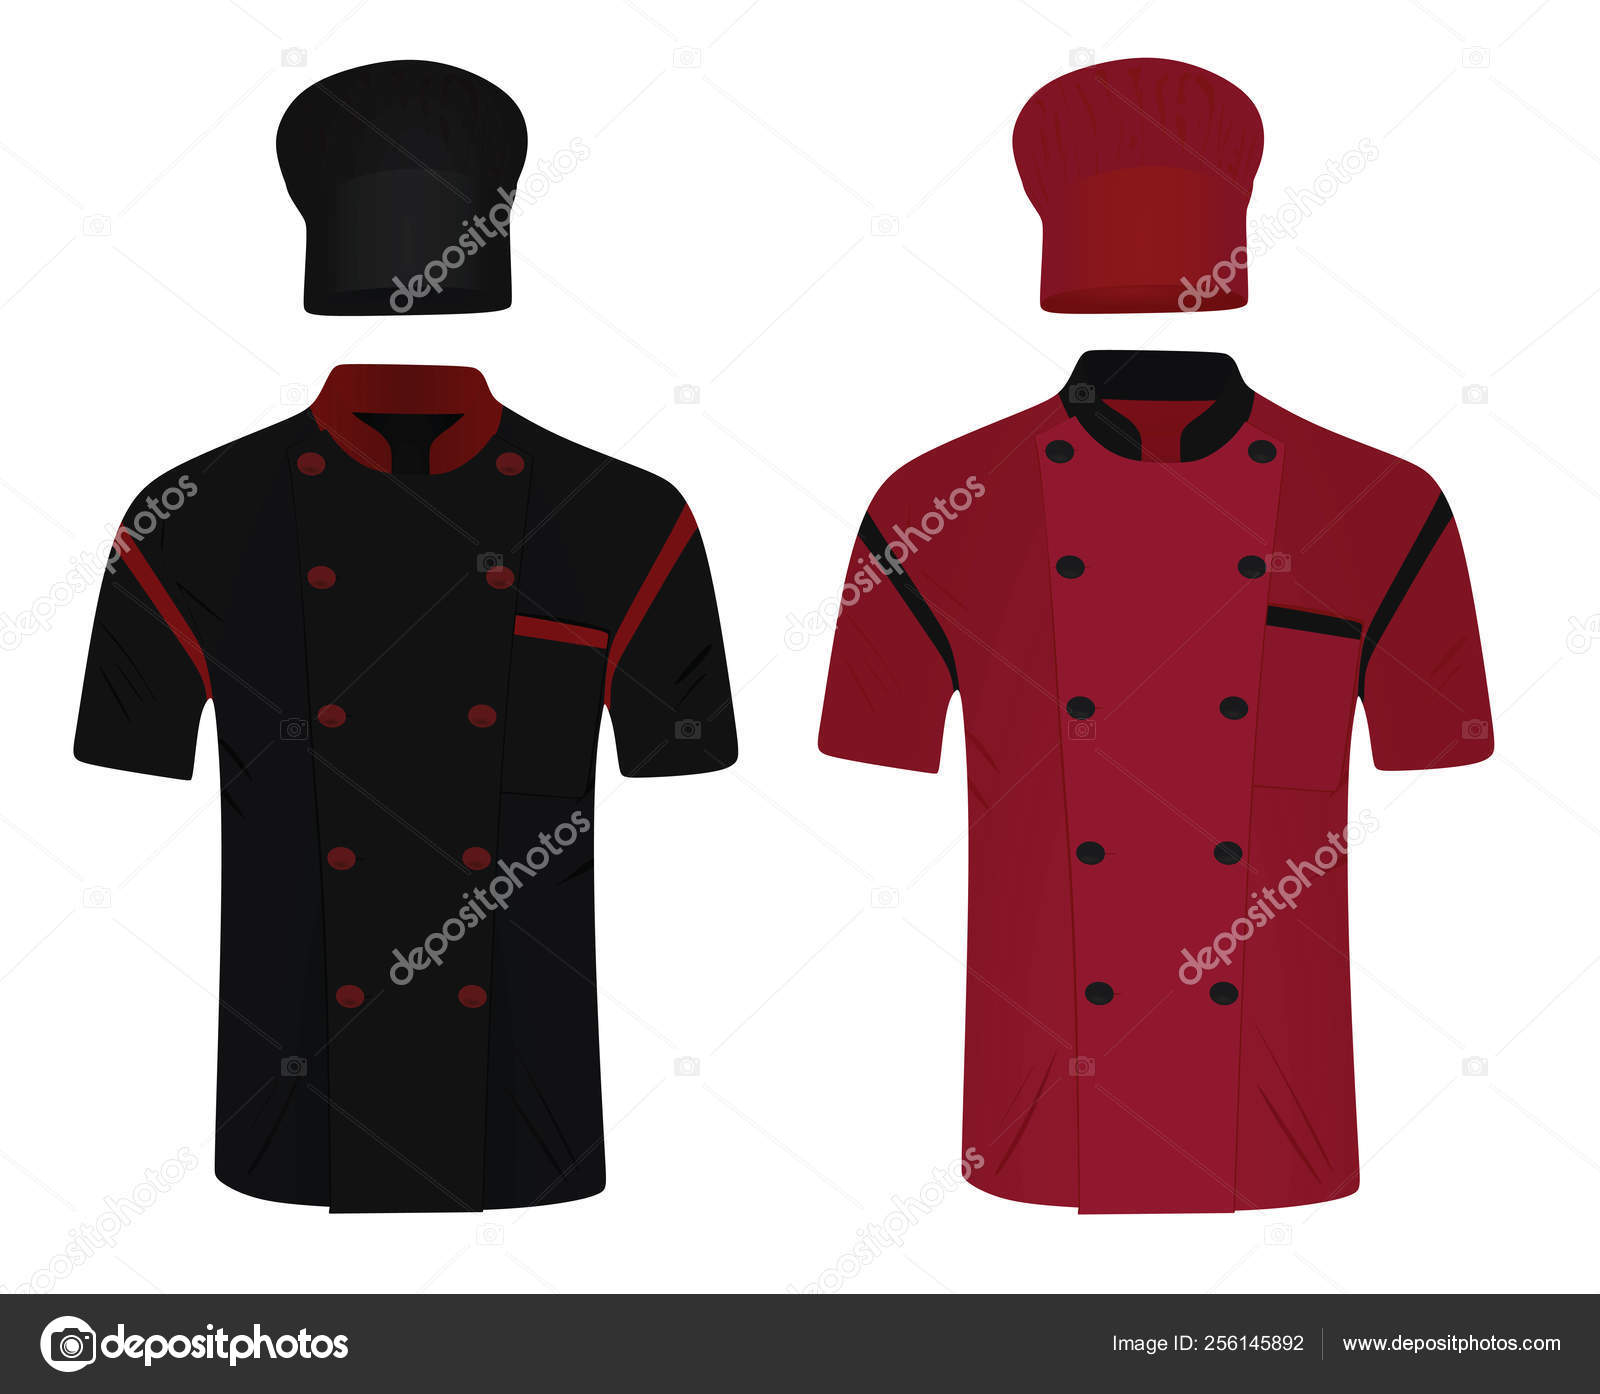 Find download free graphic resources for chef uniform. Chef Uniform Shirt Hat Vector Illustration Stock Vector Image By C Marijamara 256145892